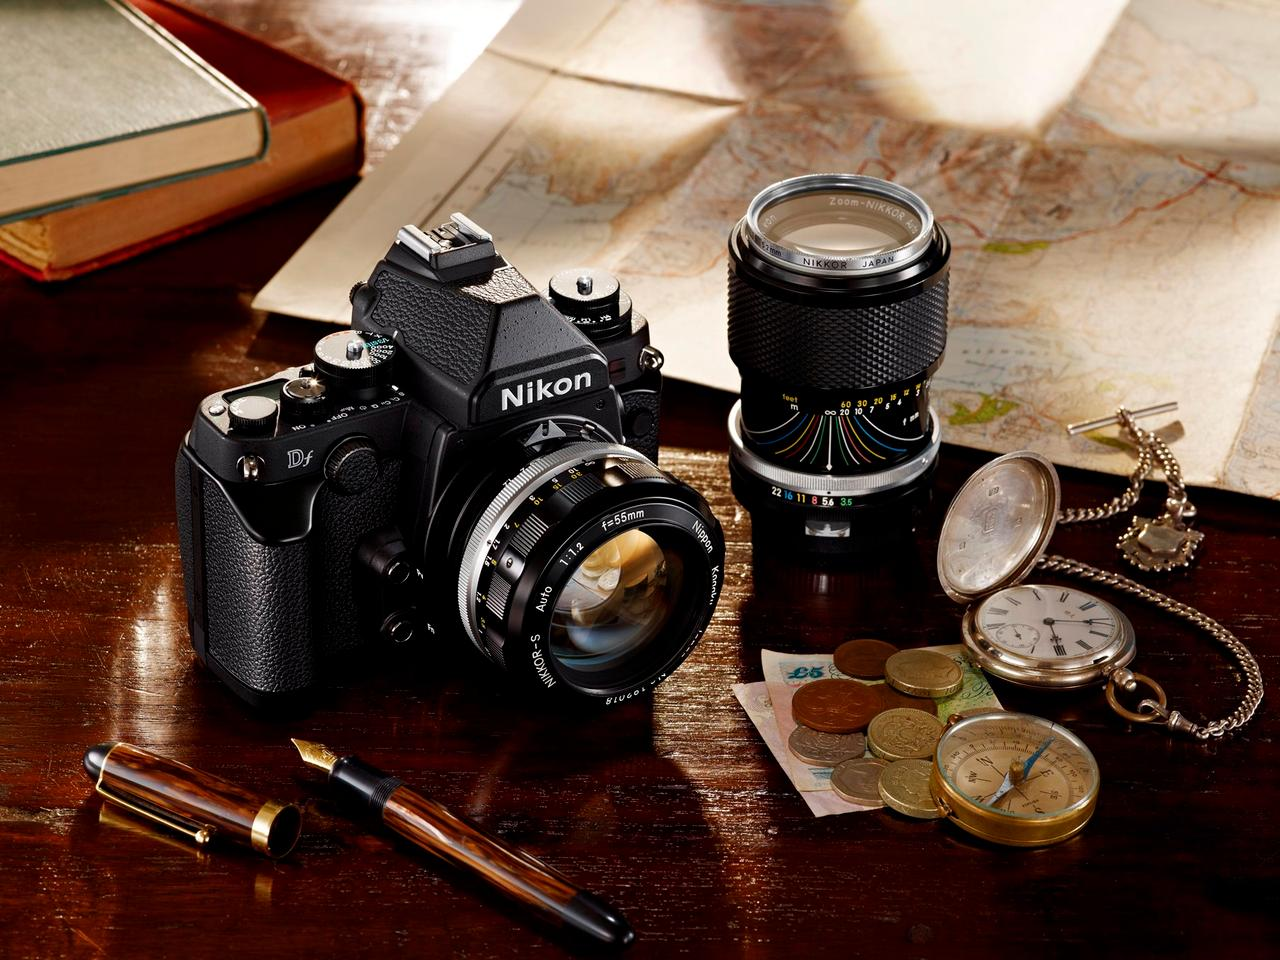 The Df is compatible with virtually all Nikon F-mount lenses